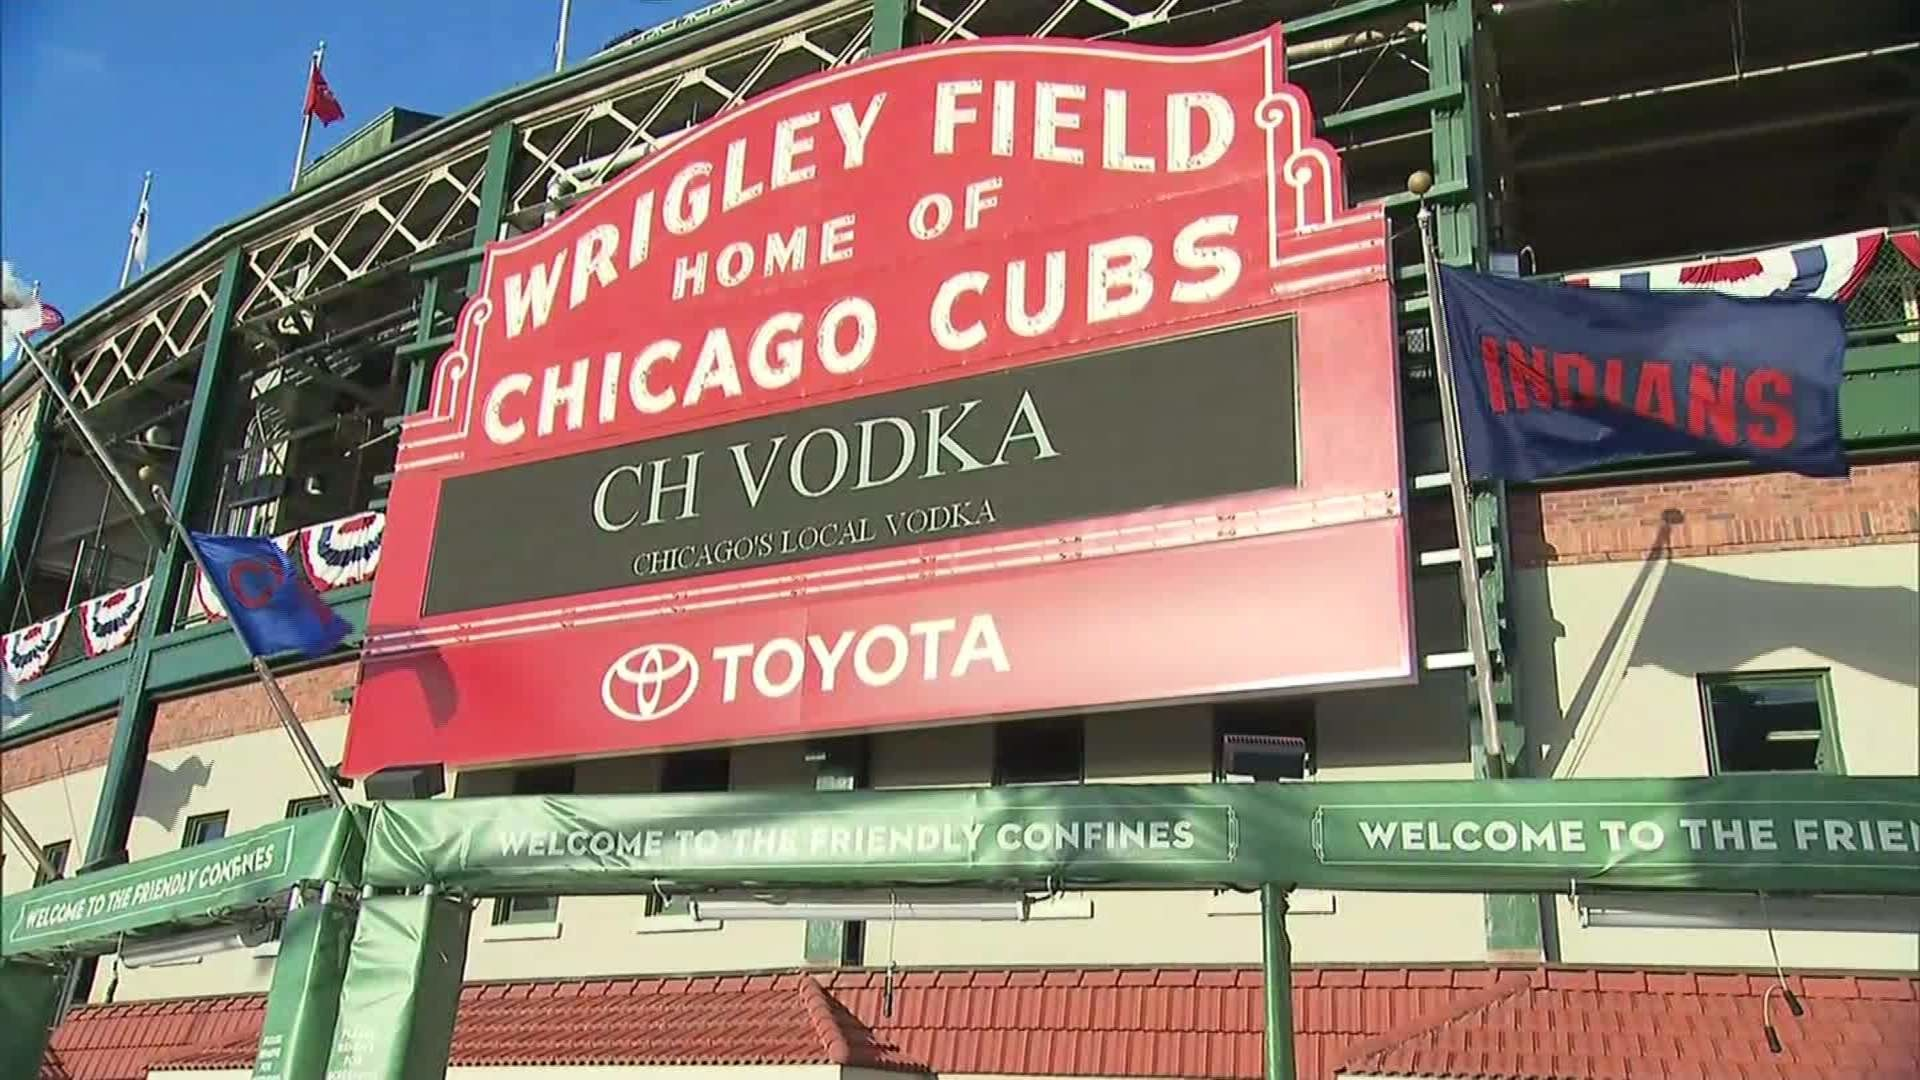 1920x1080 World Series returns to Chicago's Wrigley Field